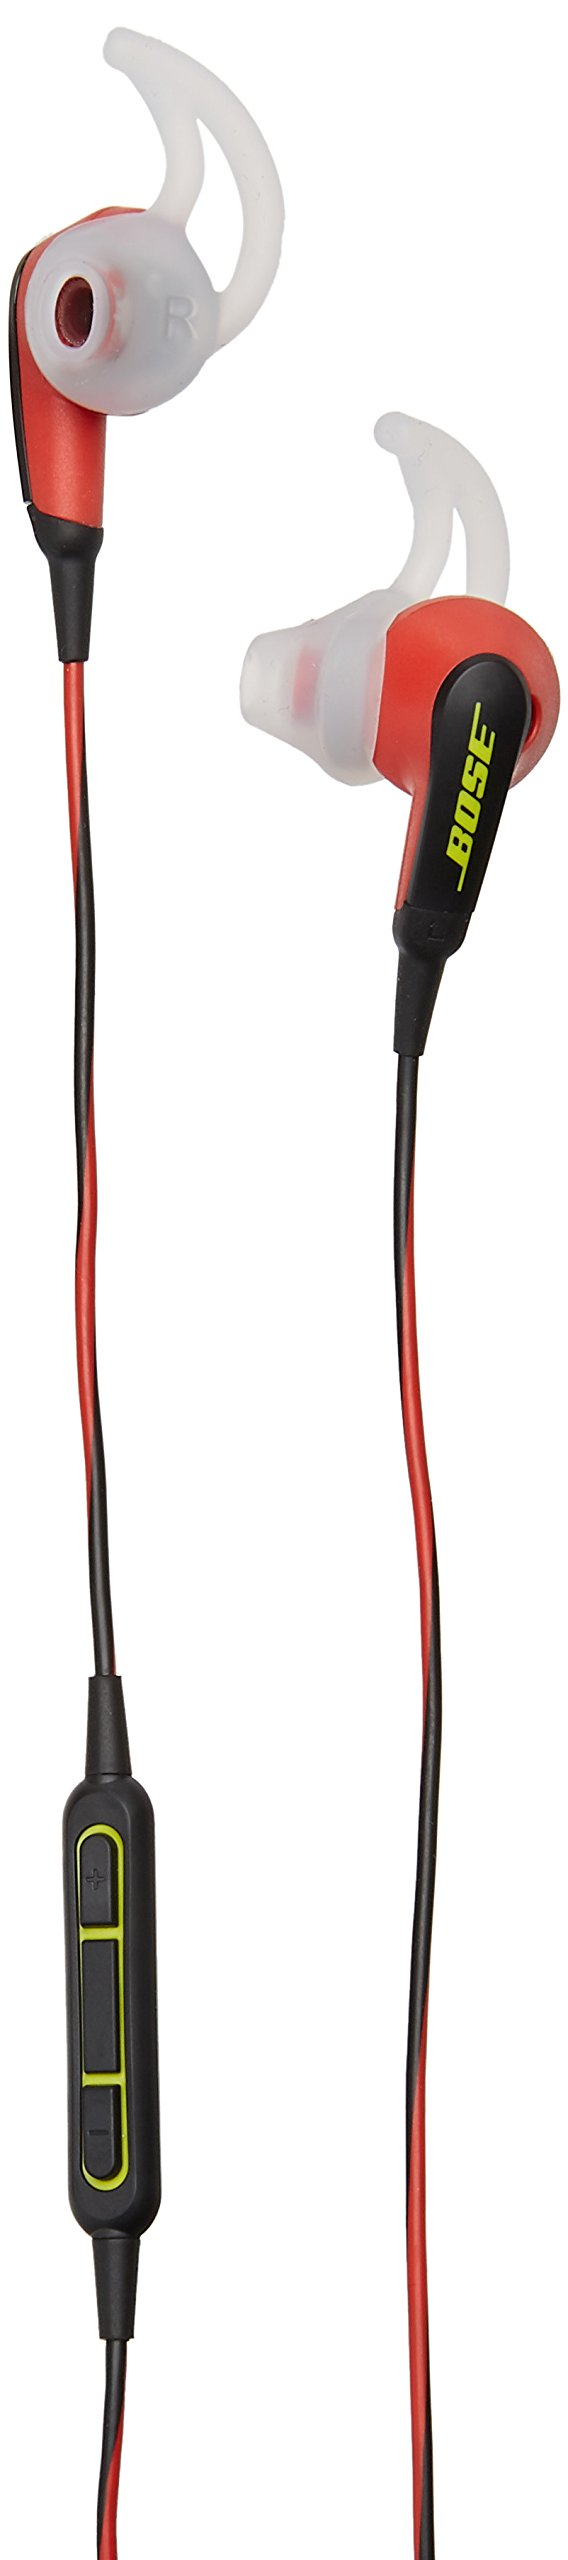 Bose SoundSport in-ear headphones - Apple devices, Power Red - 741776-0040